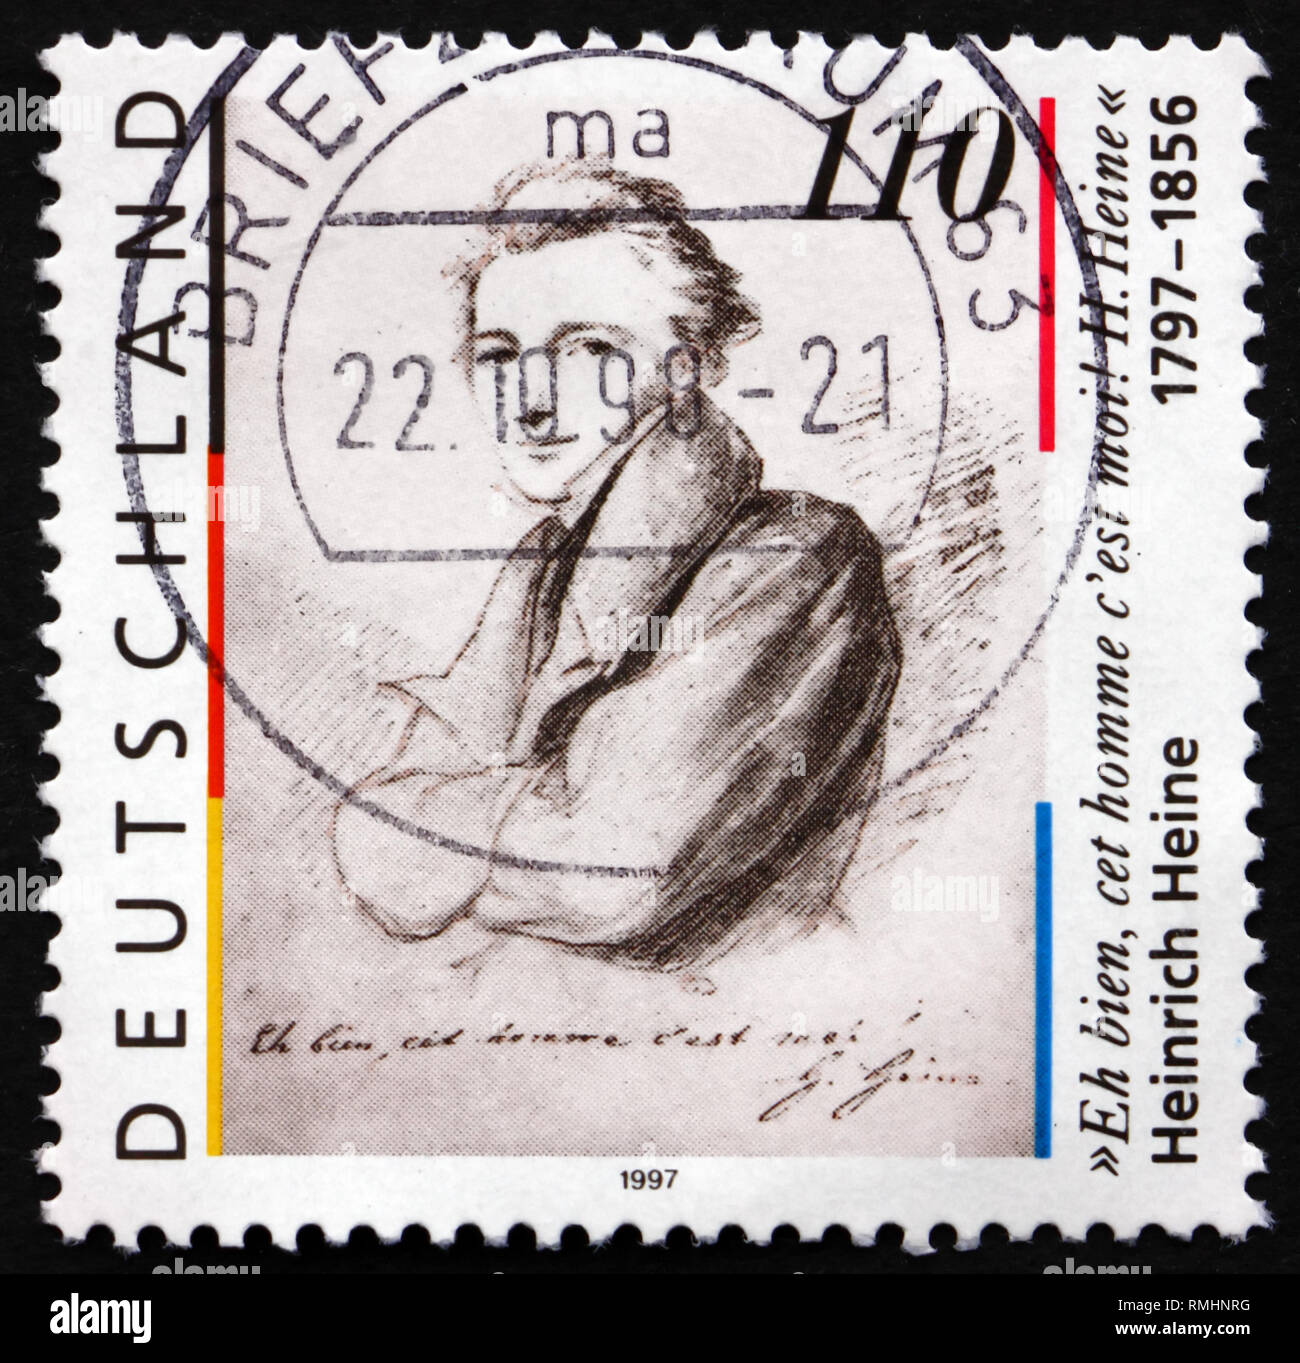 GERMANY - CIRCA 1997: a stamp printed in the Germany shows Heinrich Heine, poet, circa 1997 Stock Photo